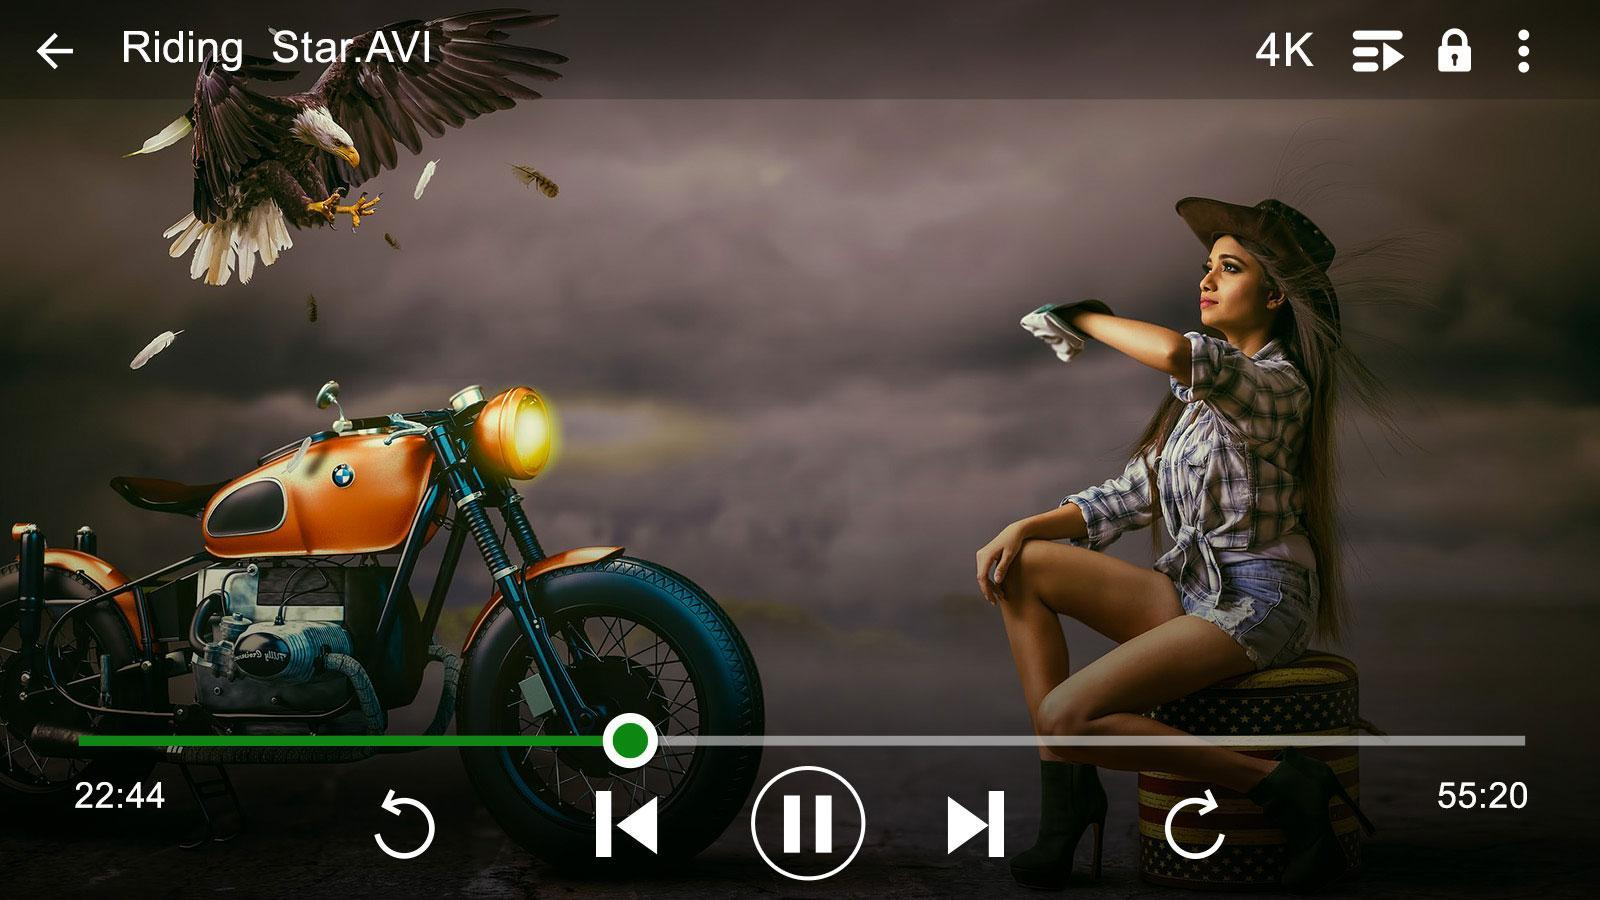 5k Video Player for Android - APK Download